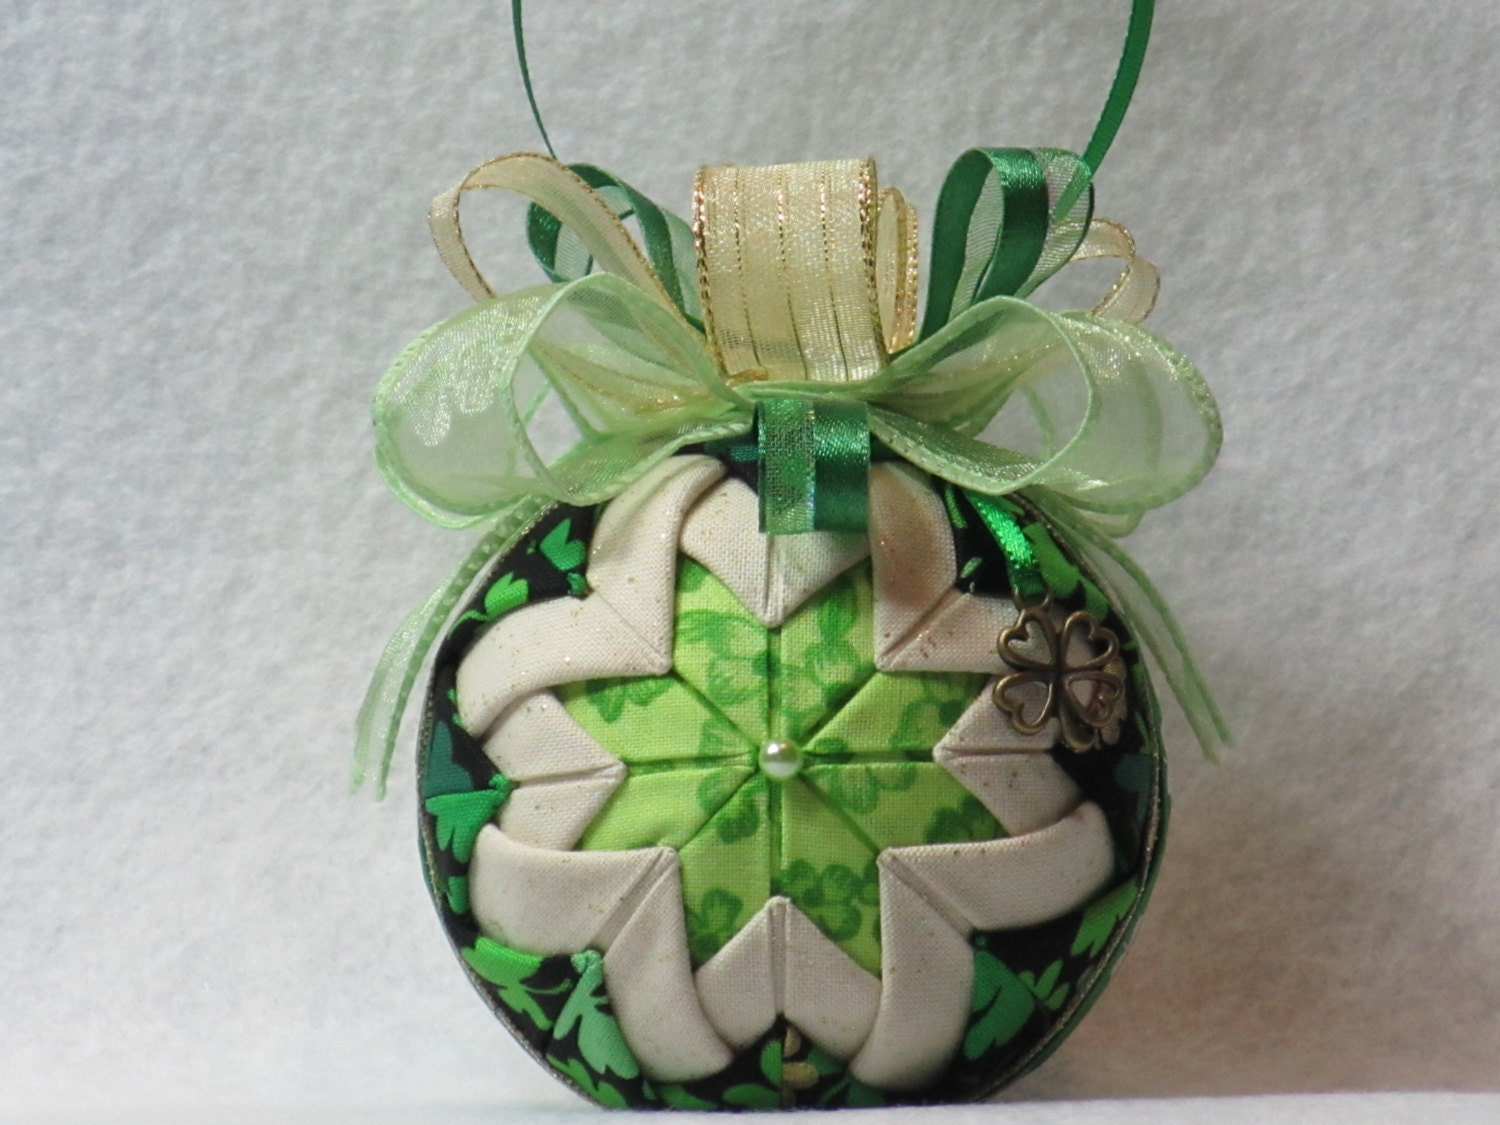 Quilted no sew fabric St. Patrick's Day ornament - black/green/gold shamrock fabric, shamrock ribbon, green & gold bow, with Shamrock charm